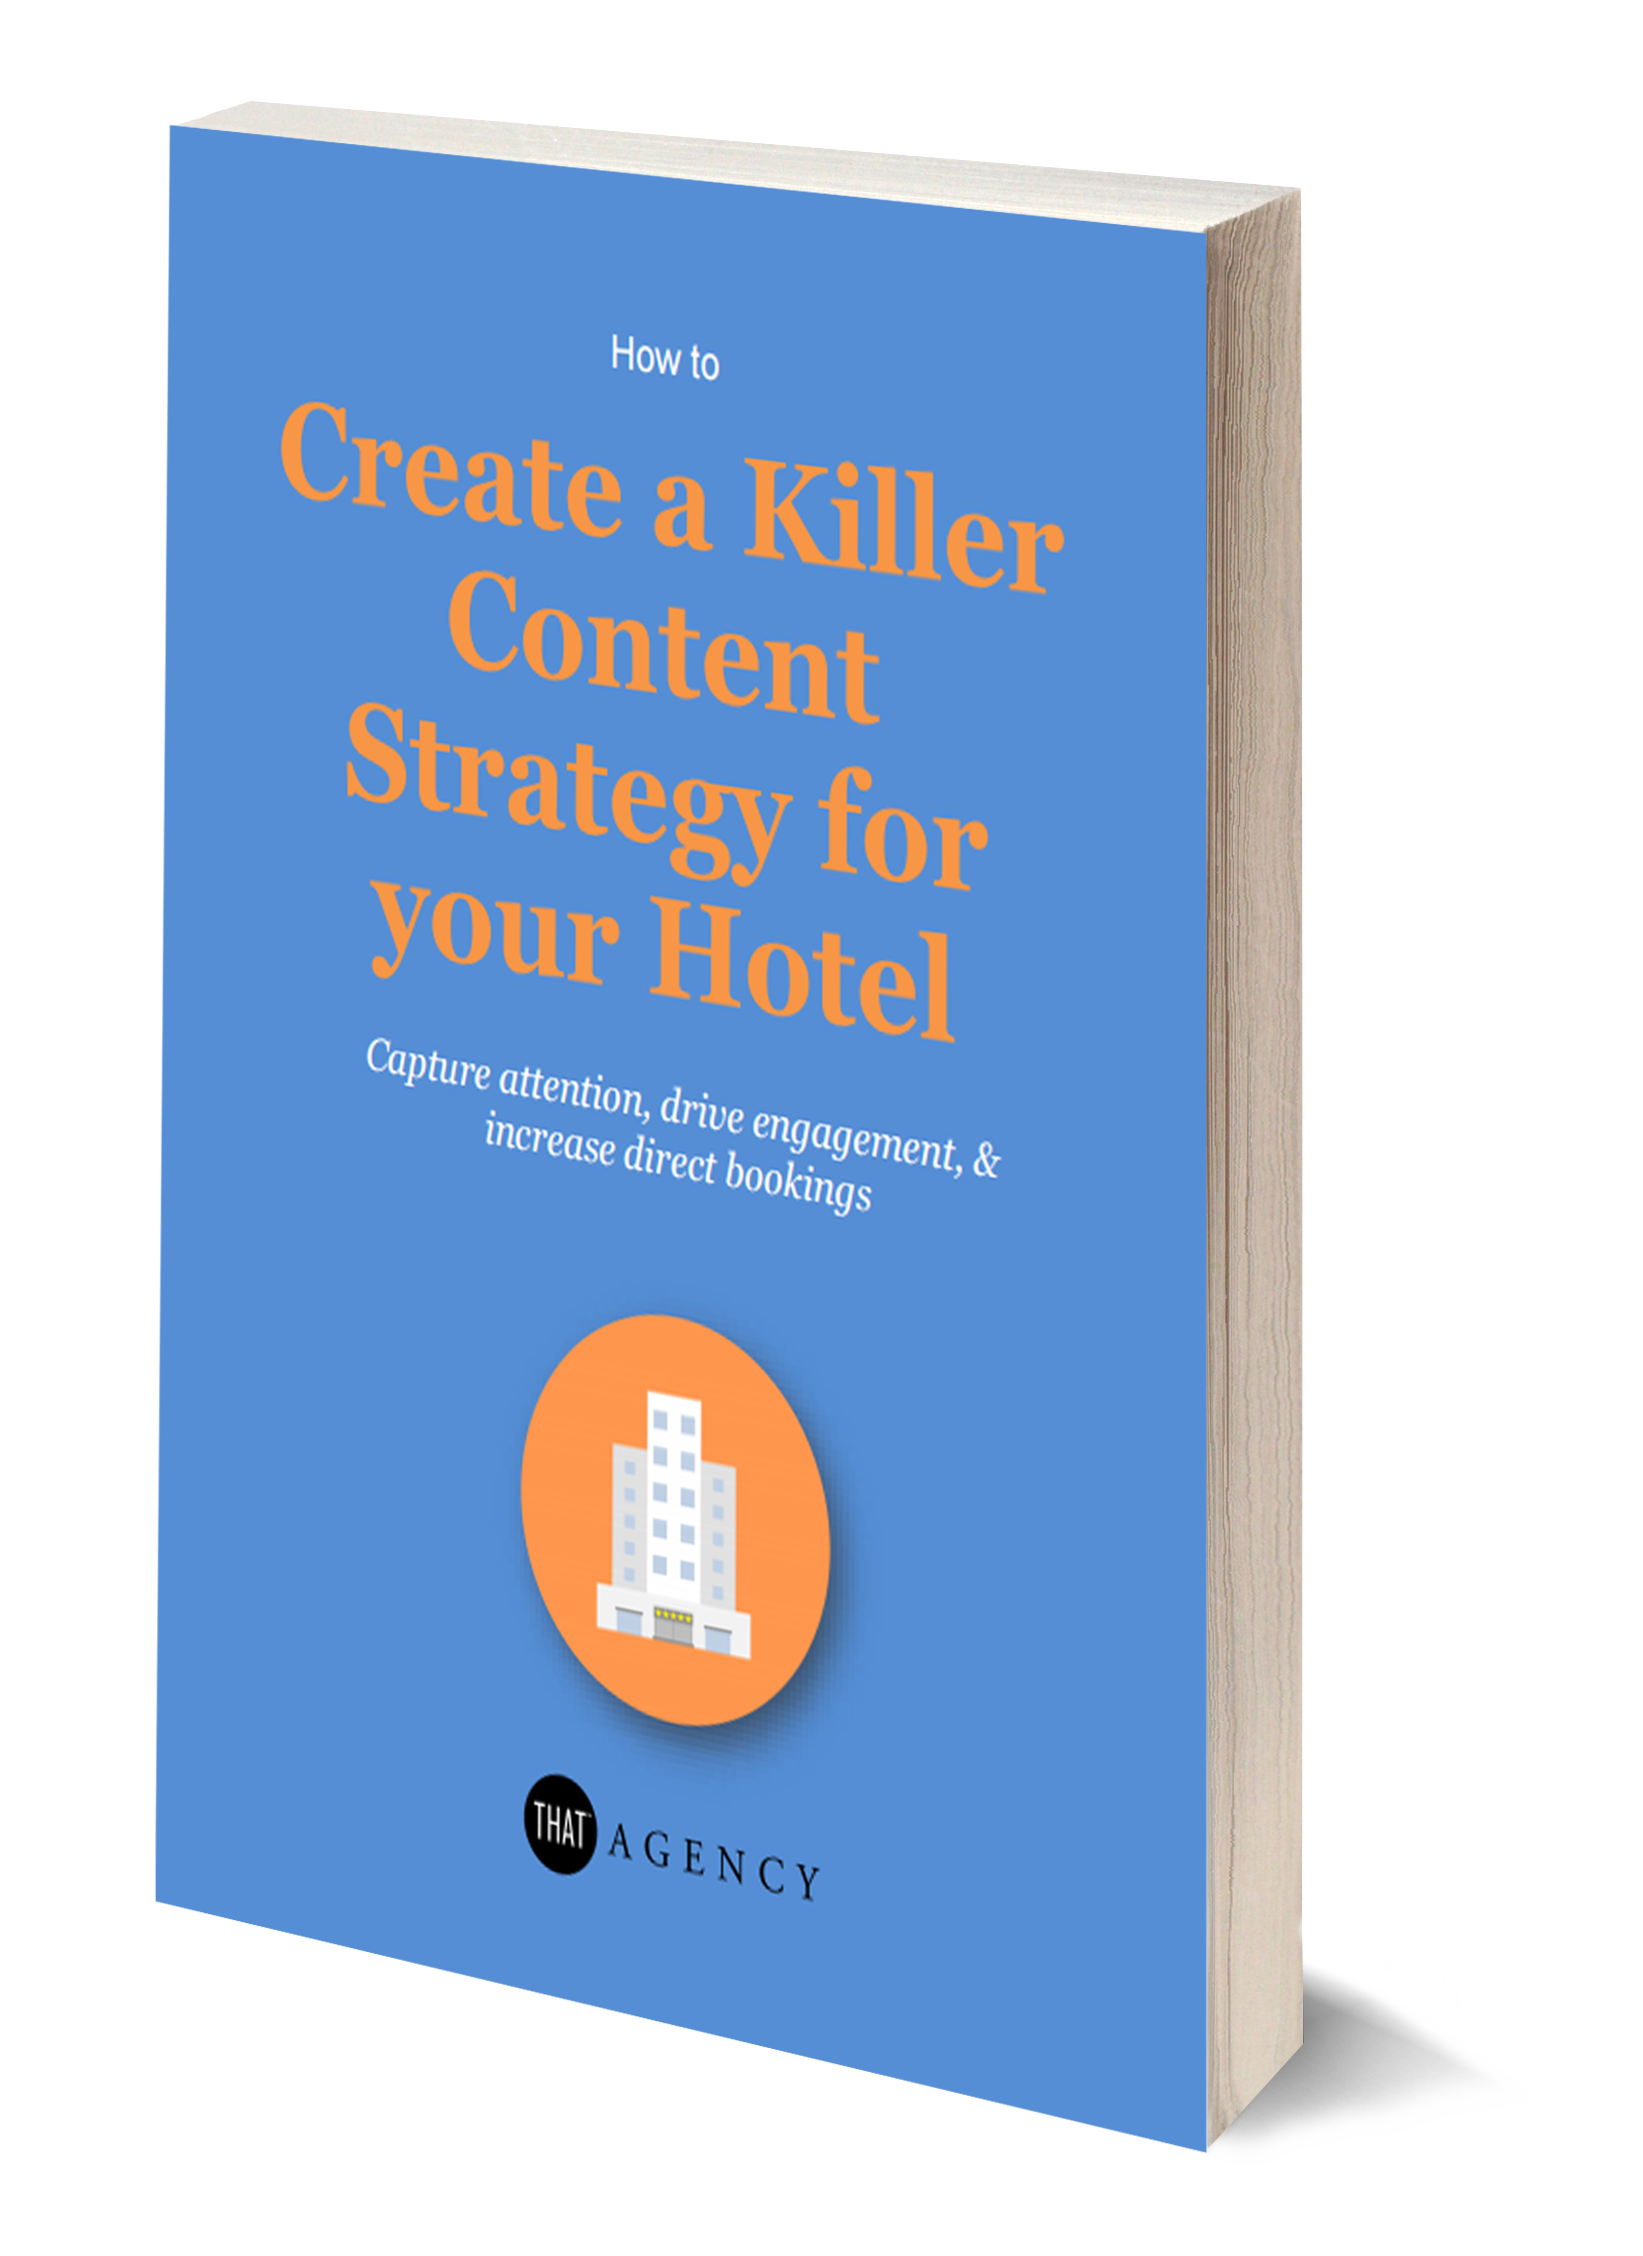 Content Marketing for Hotels | THAT Agency